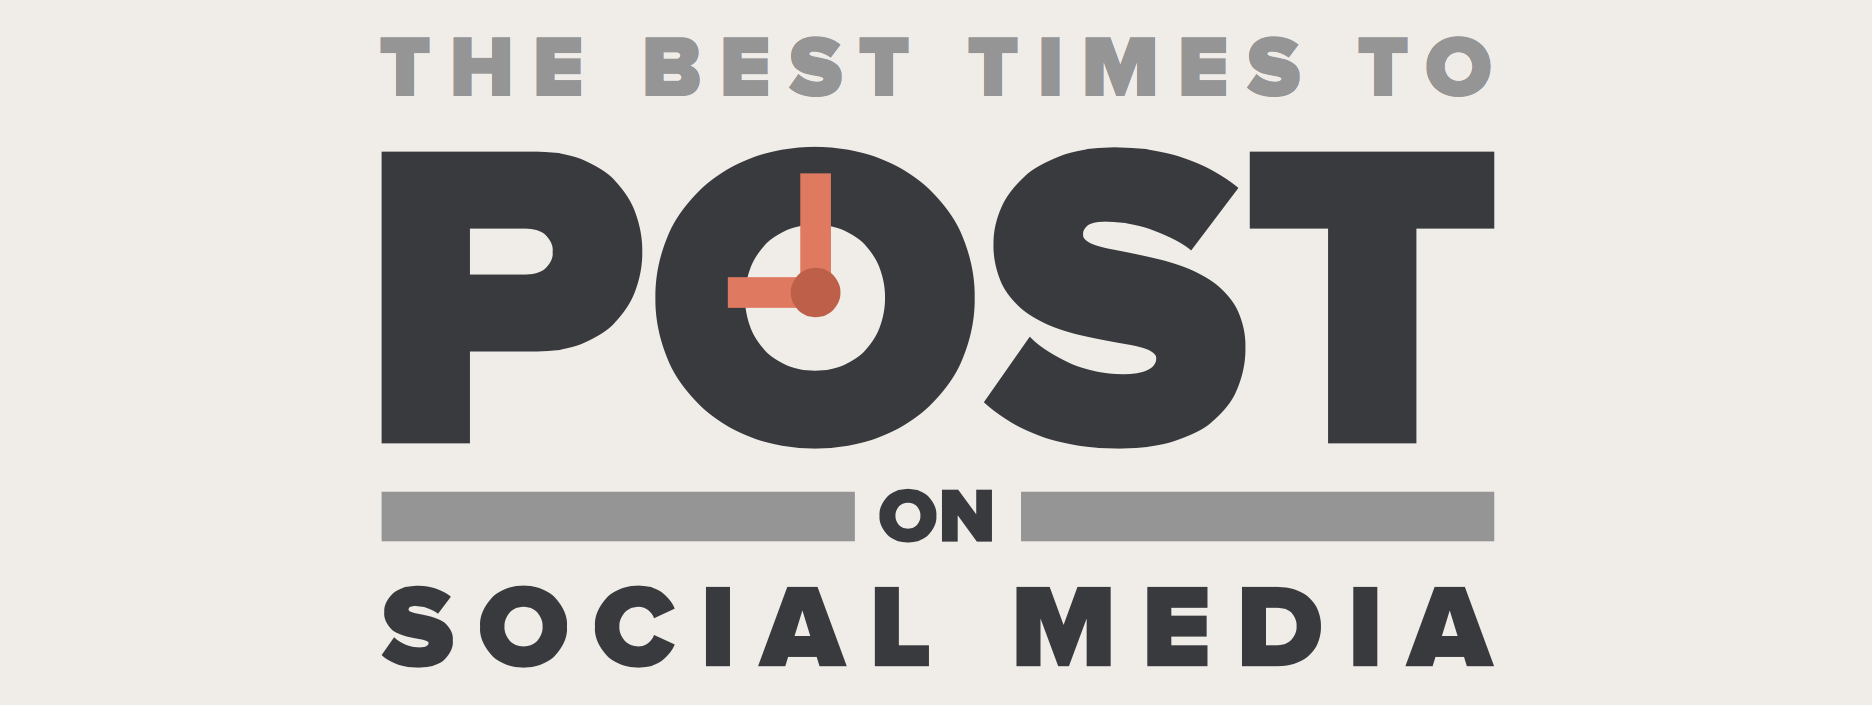 Best Times to Post on Social Media + Cheat Sheet for 75 Industries